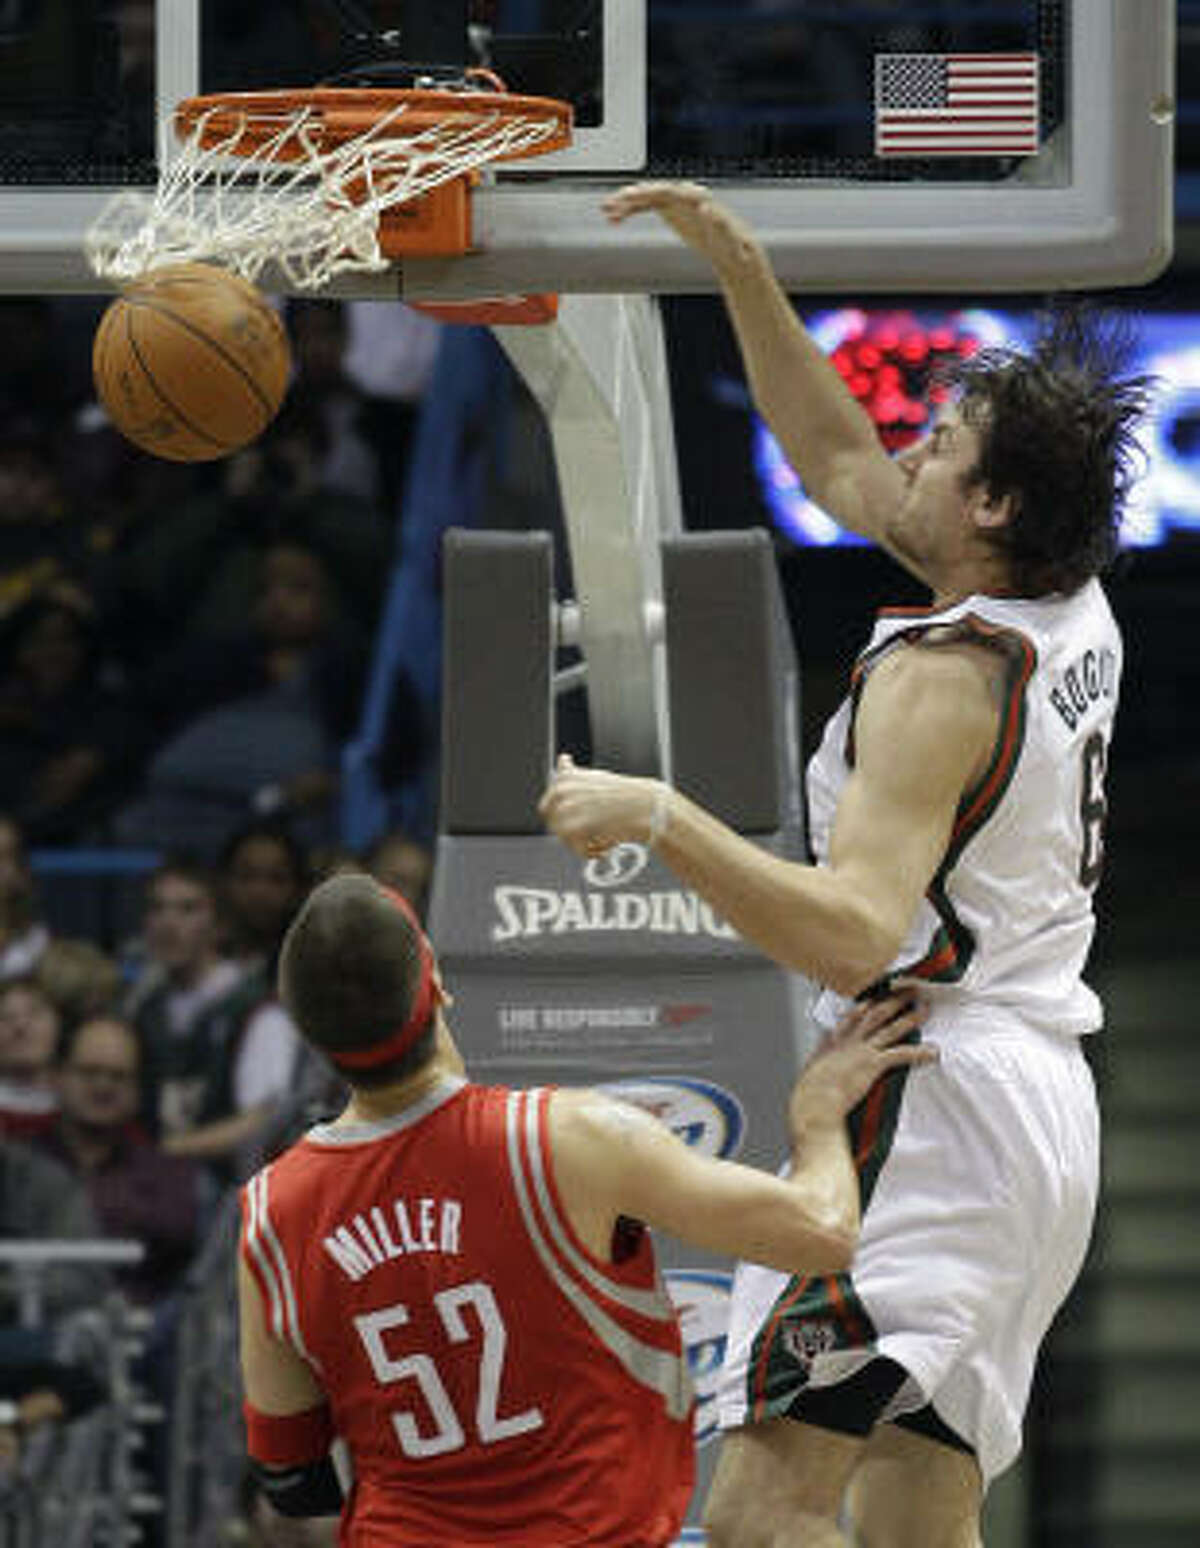 Bucks center Andrew Bogut, right, had 24 points and 22 rebounds in Friday night's victory over Brad Miller and the Rockets.